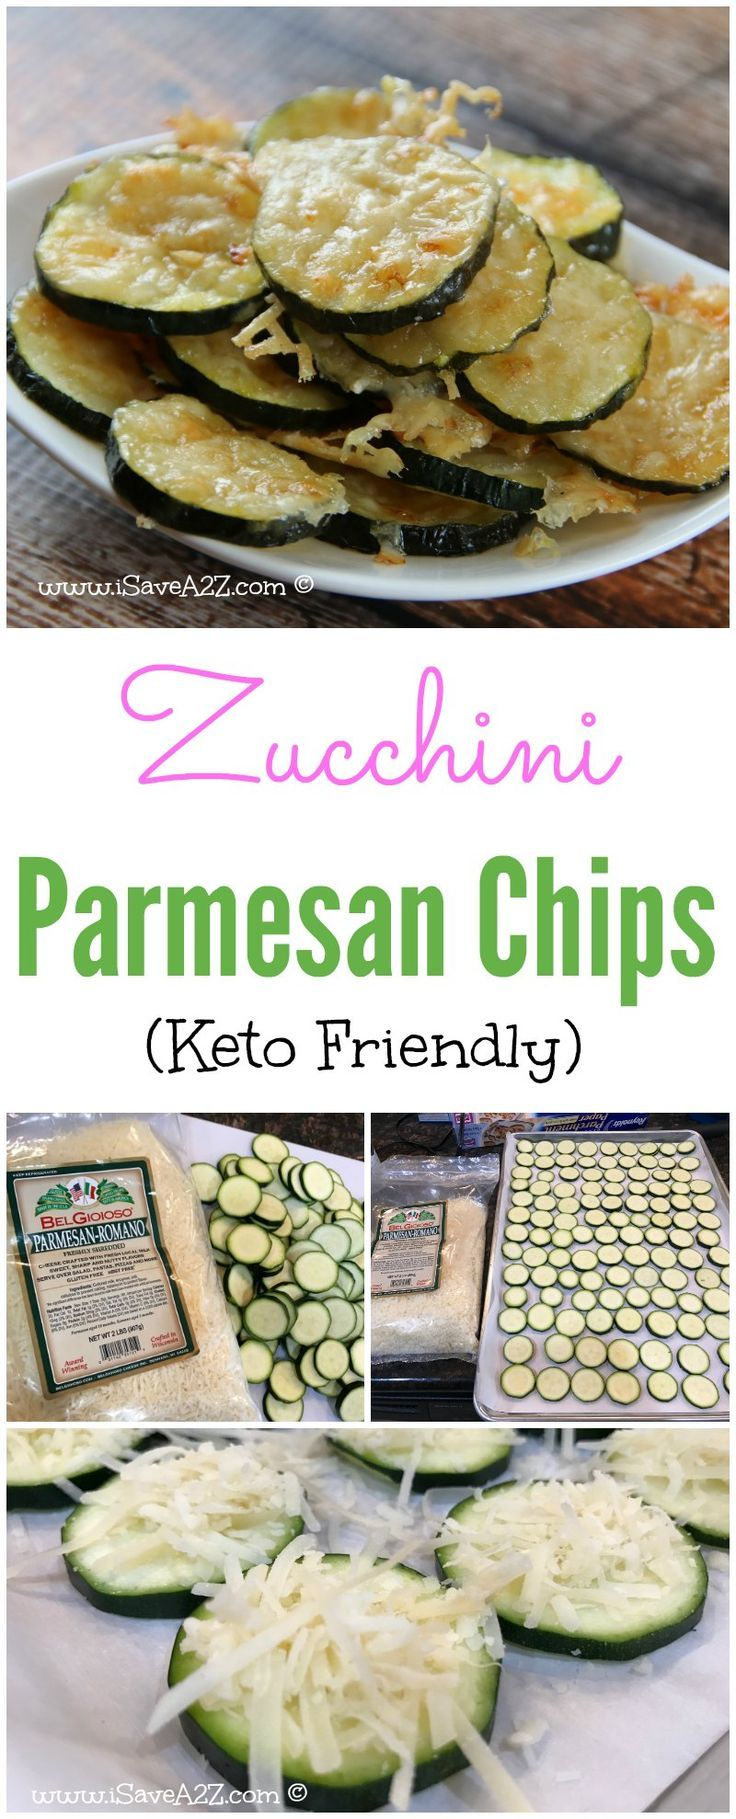 Keto Parmesan Crusted Zucchini Chips! This low carb friendly snack tastes delicious and it's ready in no time.